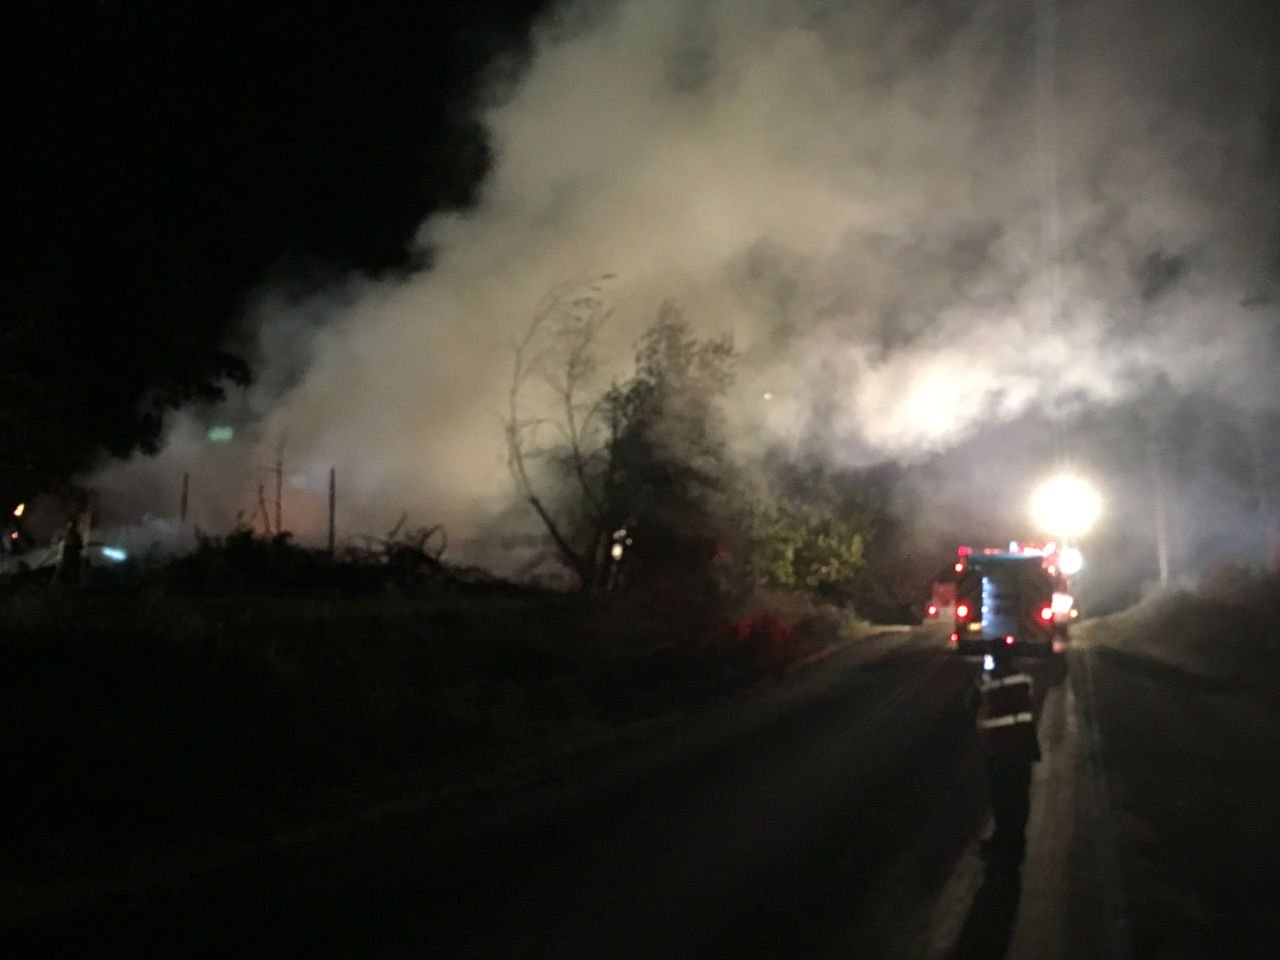 A view of the smoke coming from the house following a fire Tuesday night.